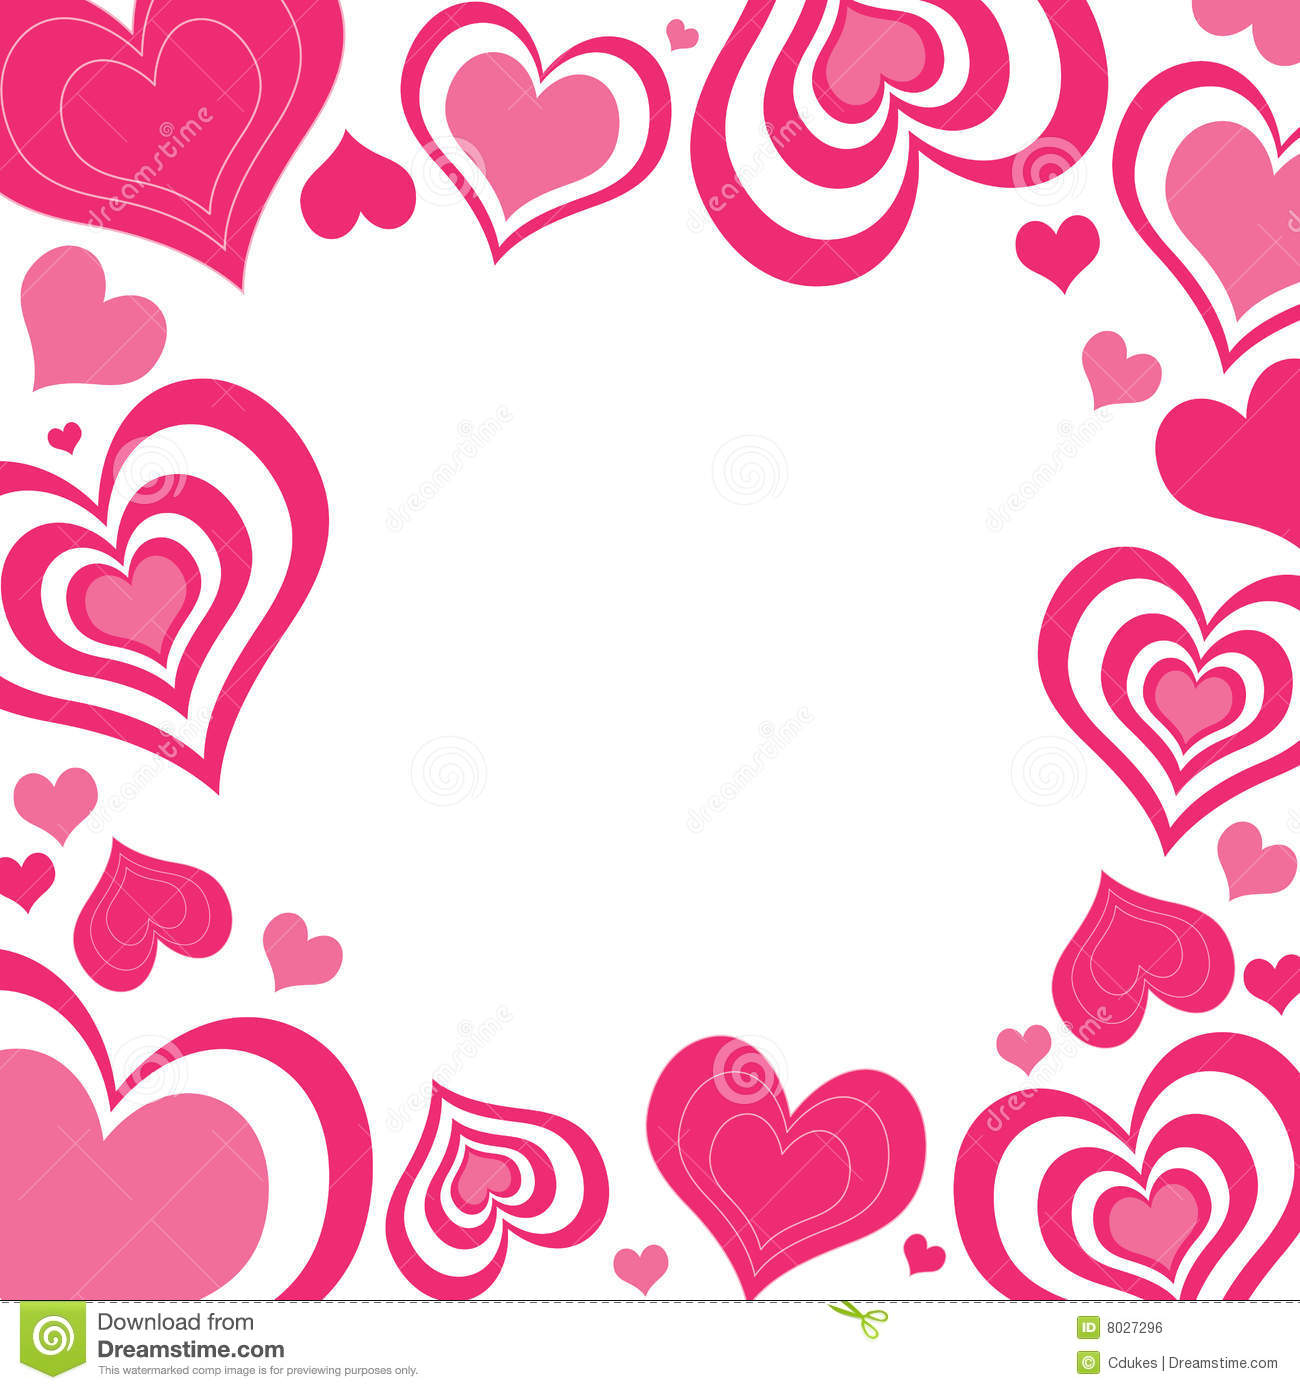 Free Clip Art Valentines Day Heart Border.